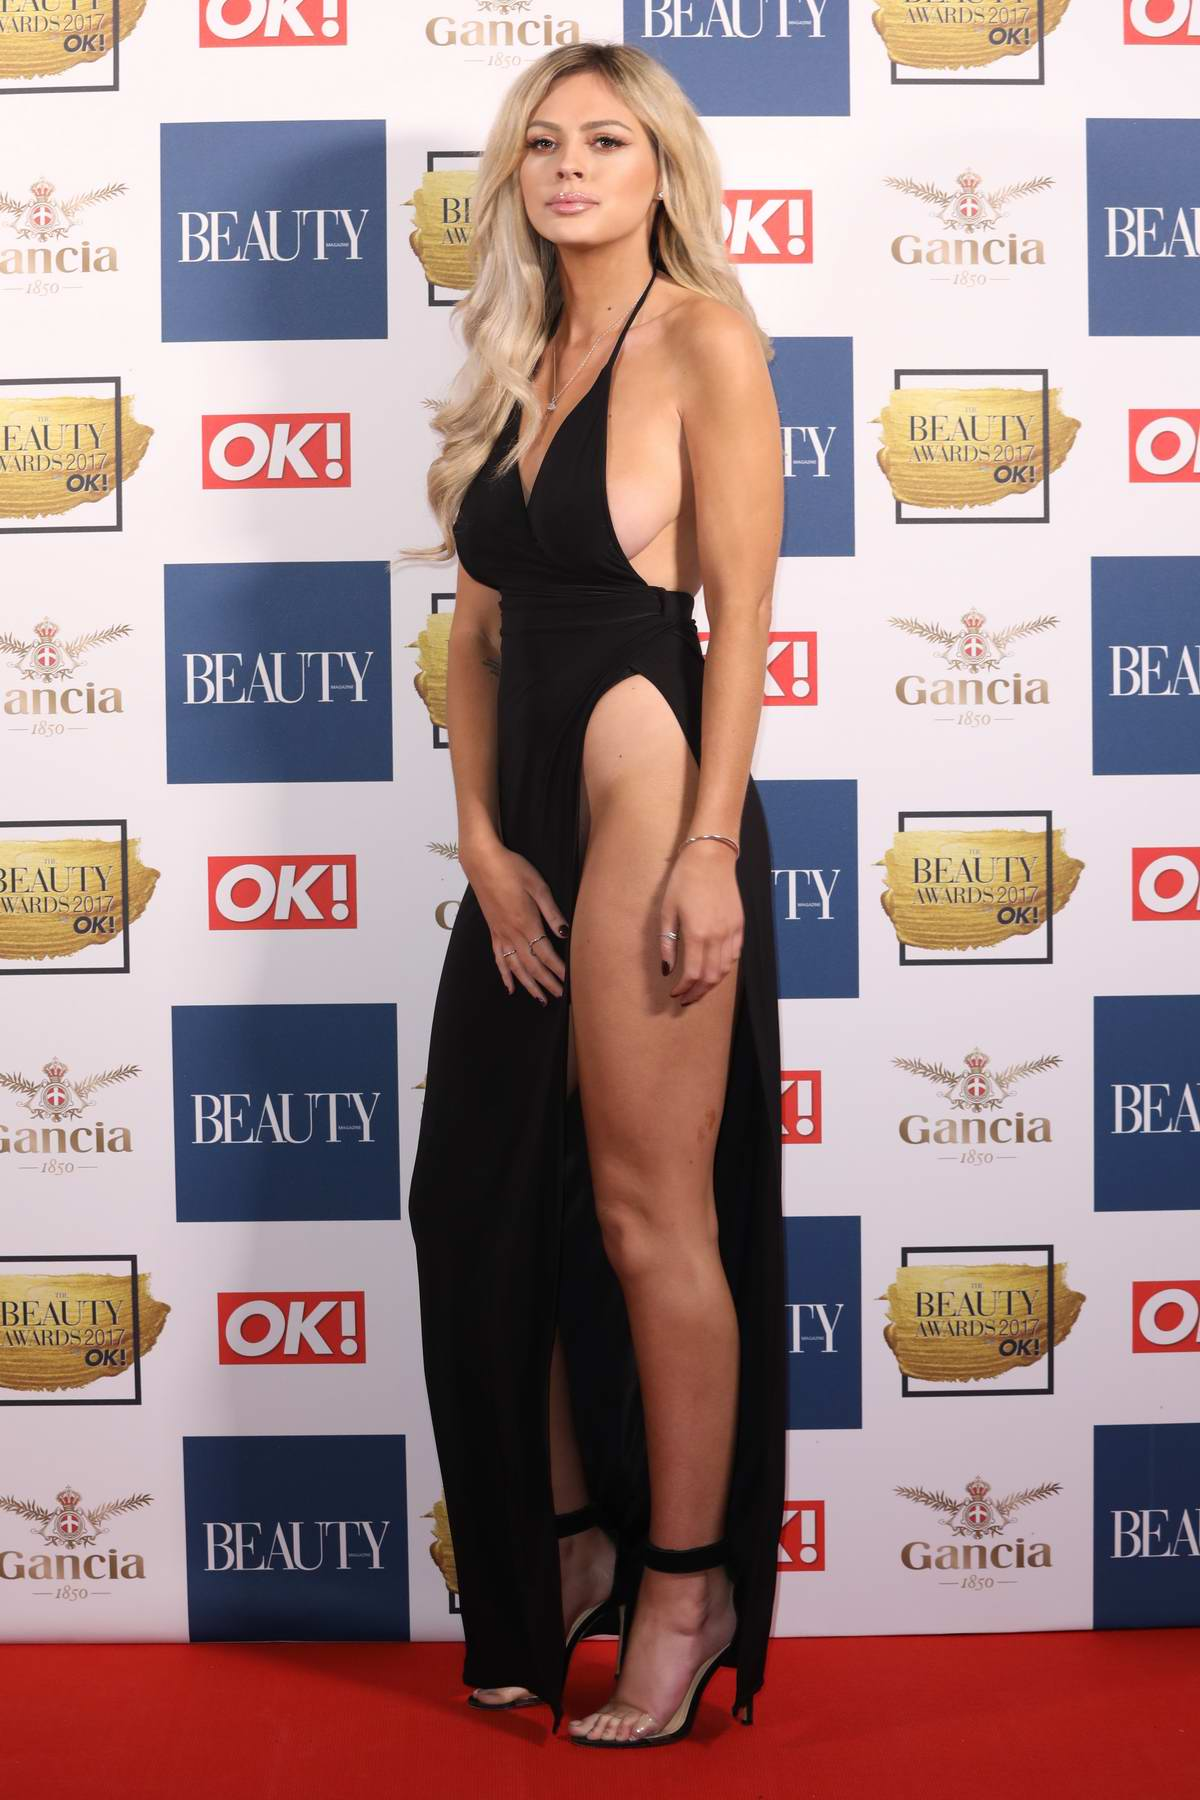 Danielle Sellers attends the OK Magazine Beauty Awards in London